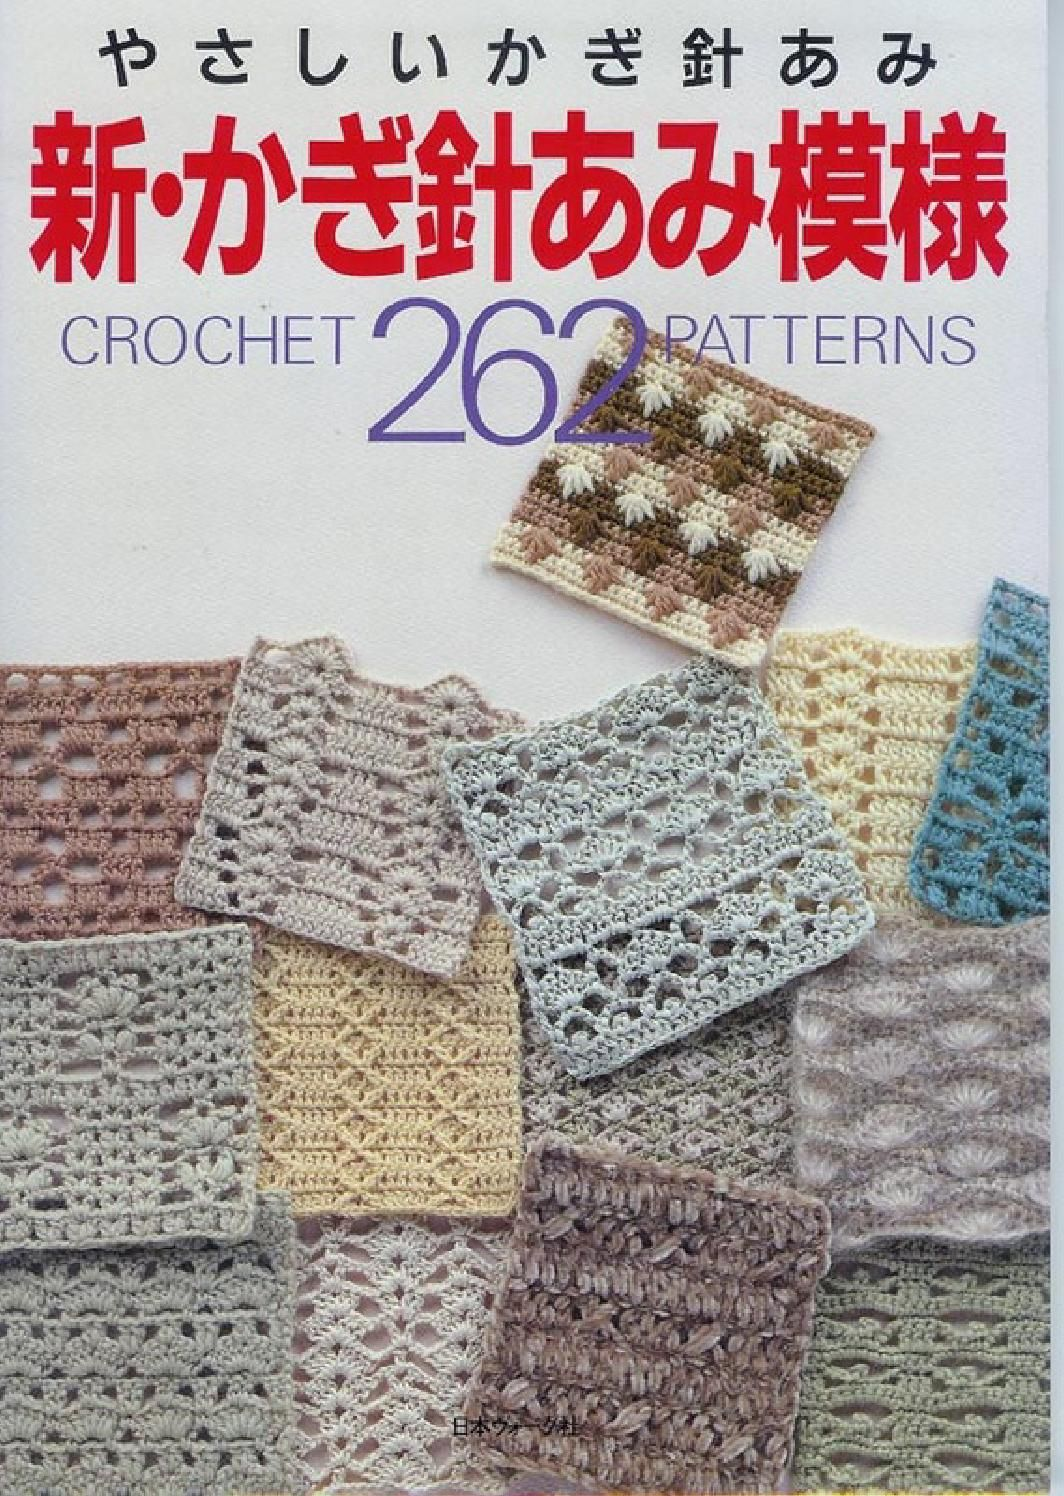 262 Crochet Patterns Yarn Love Crochet Crochet Patterns